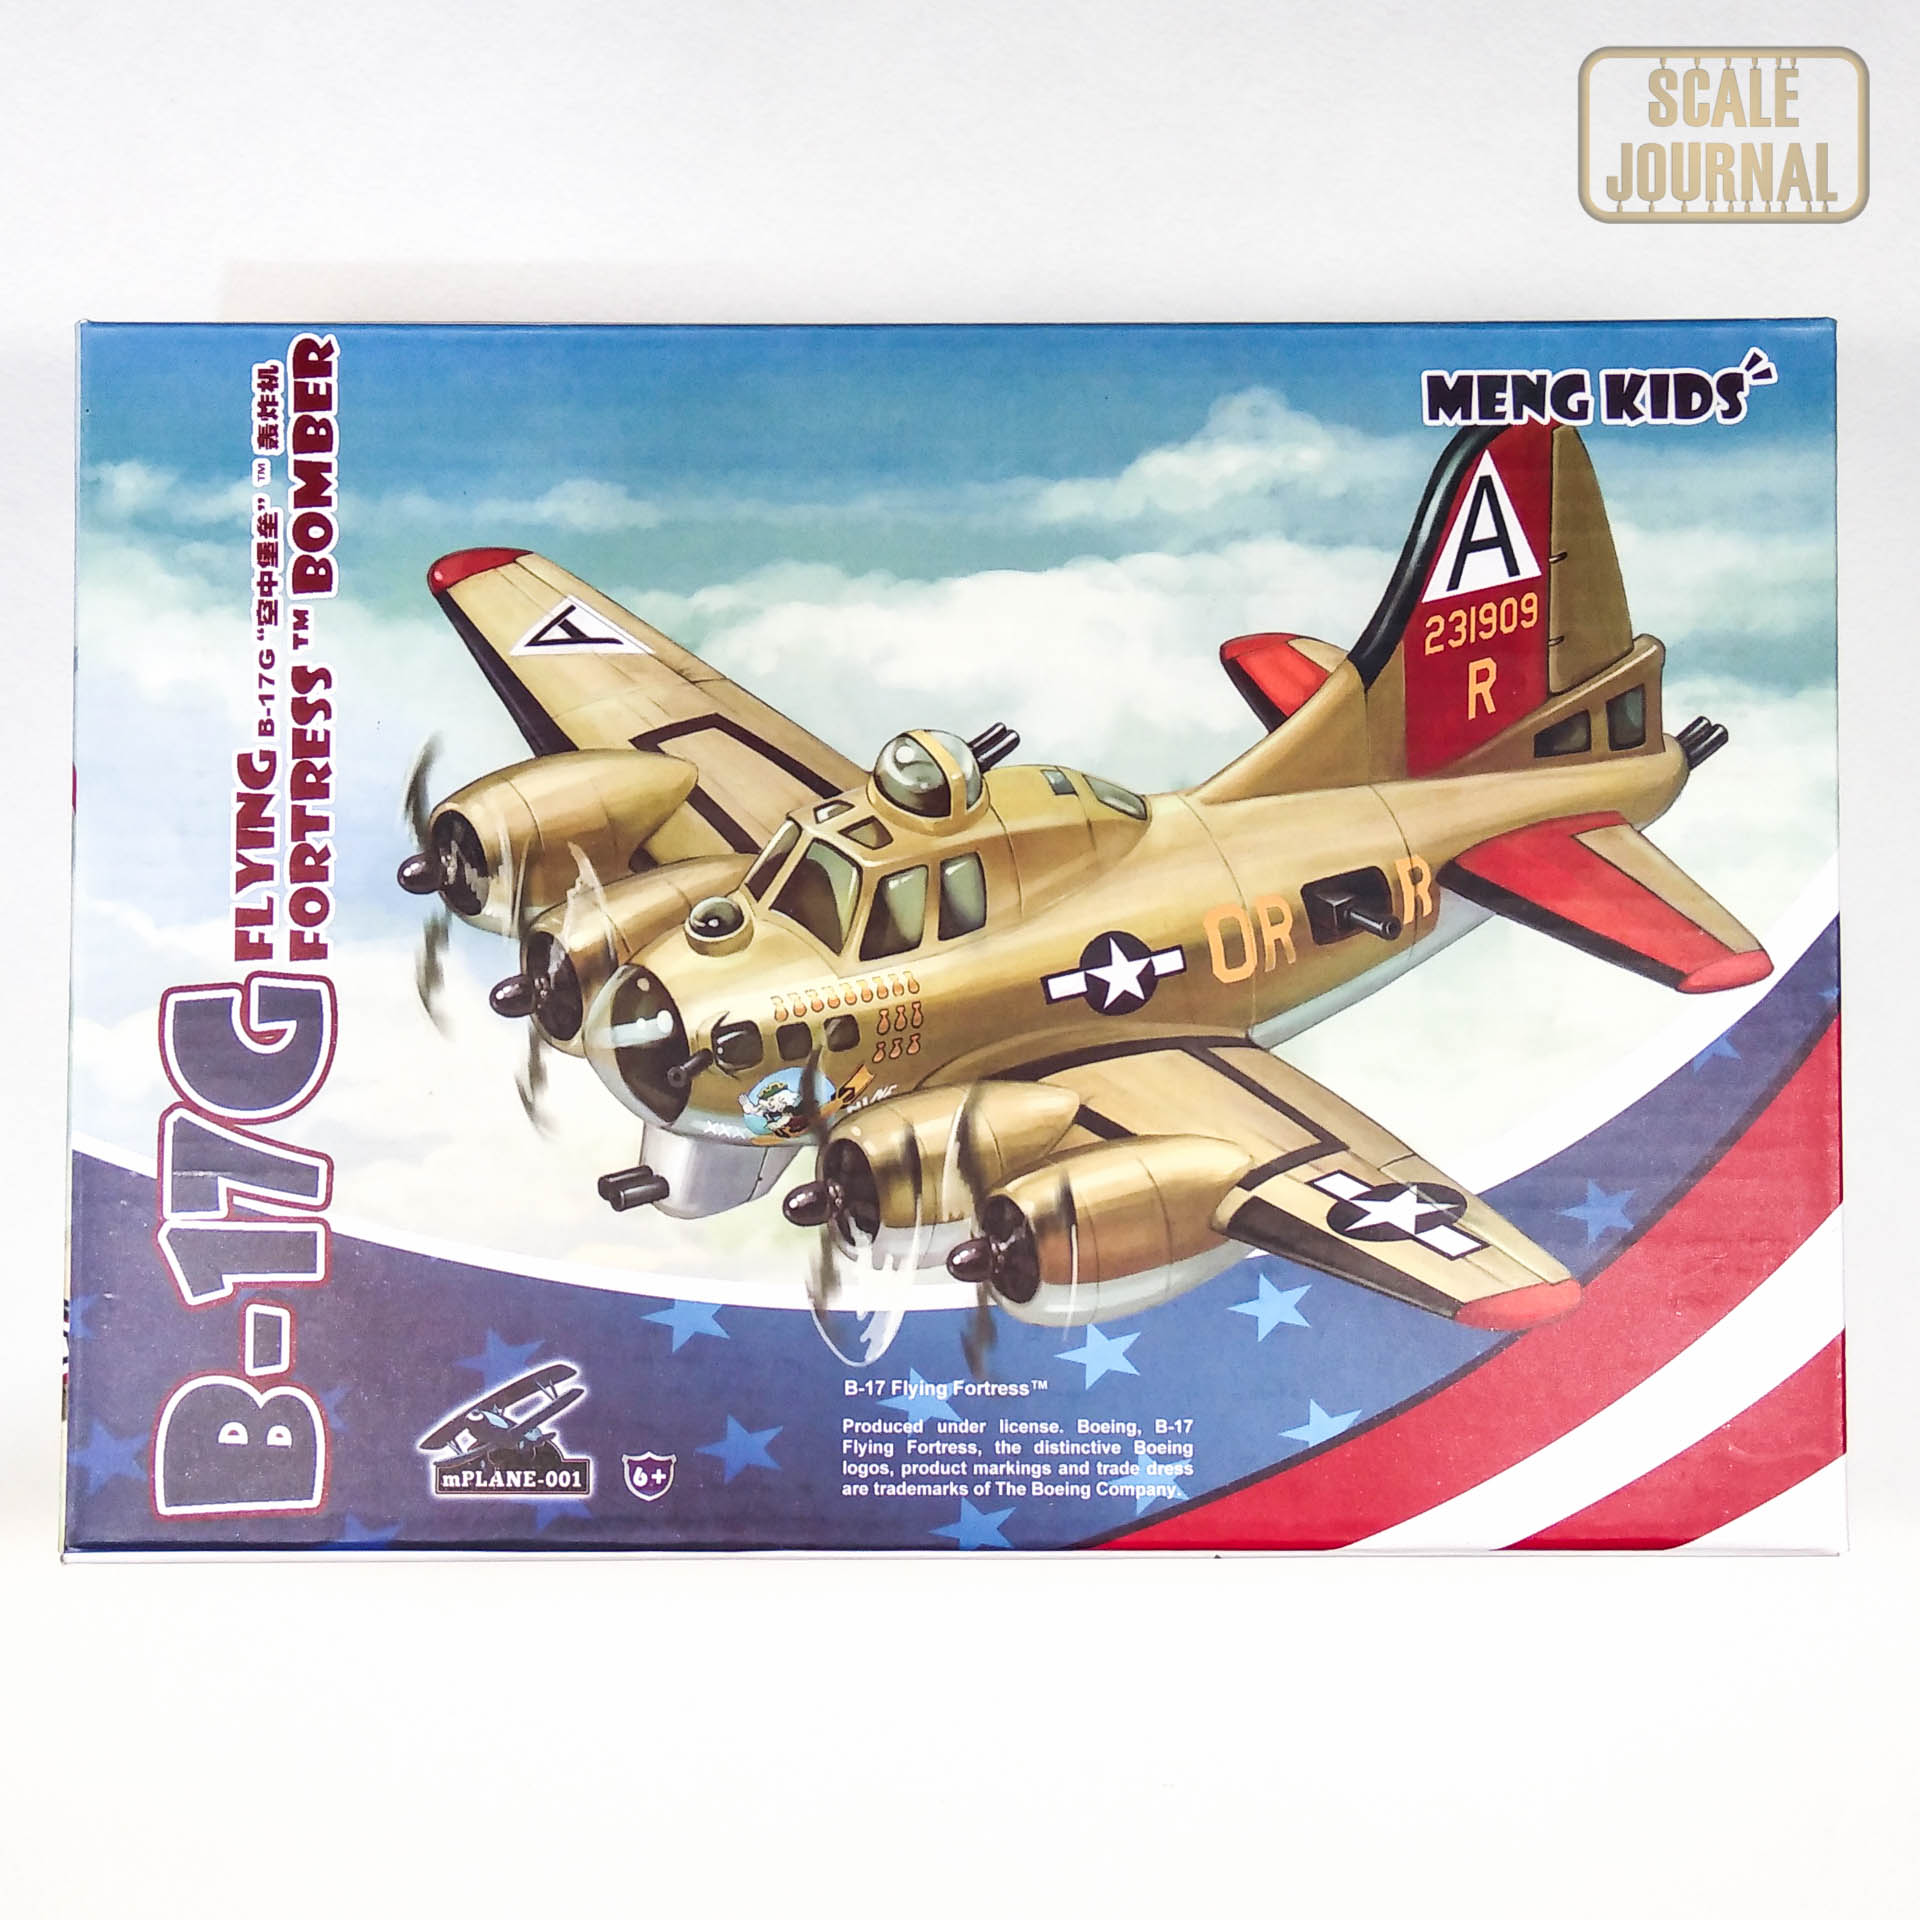 mPLANE-001 B-17G Flying Fortress Bomber